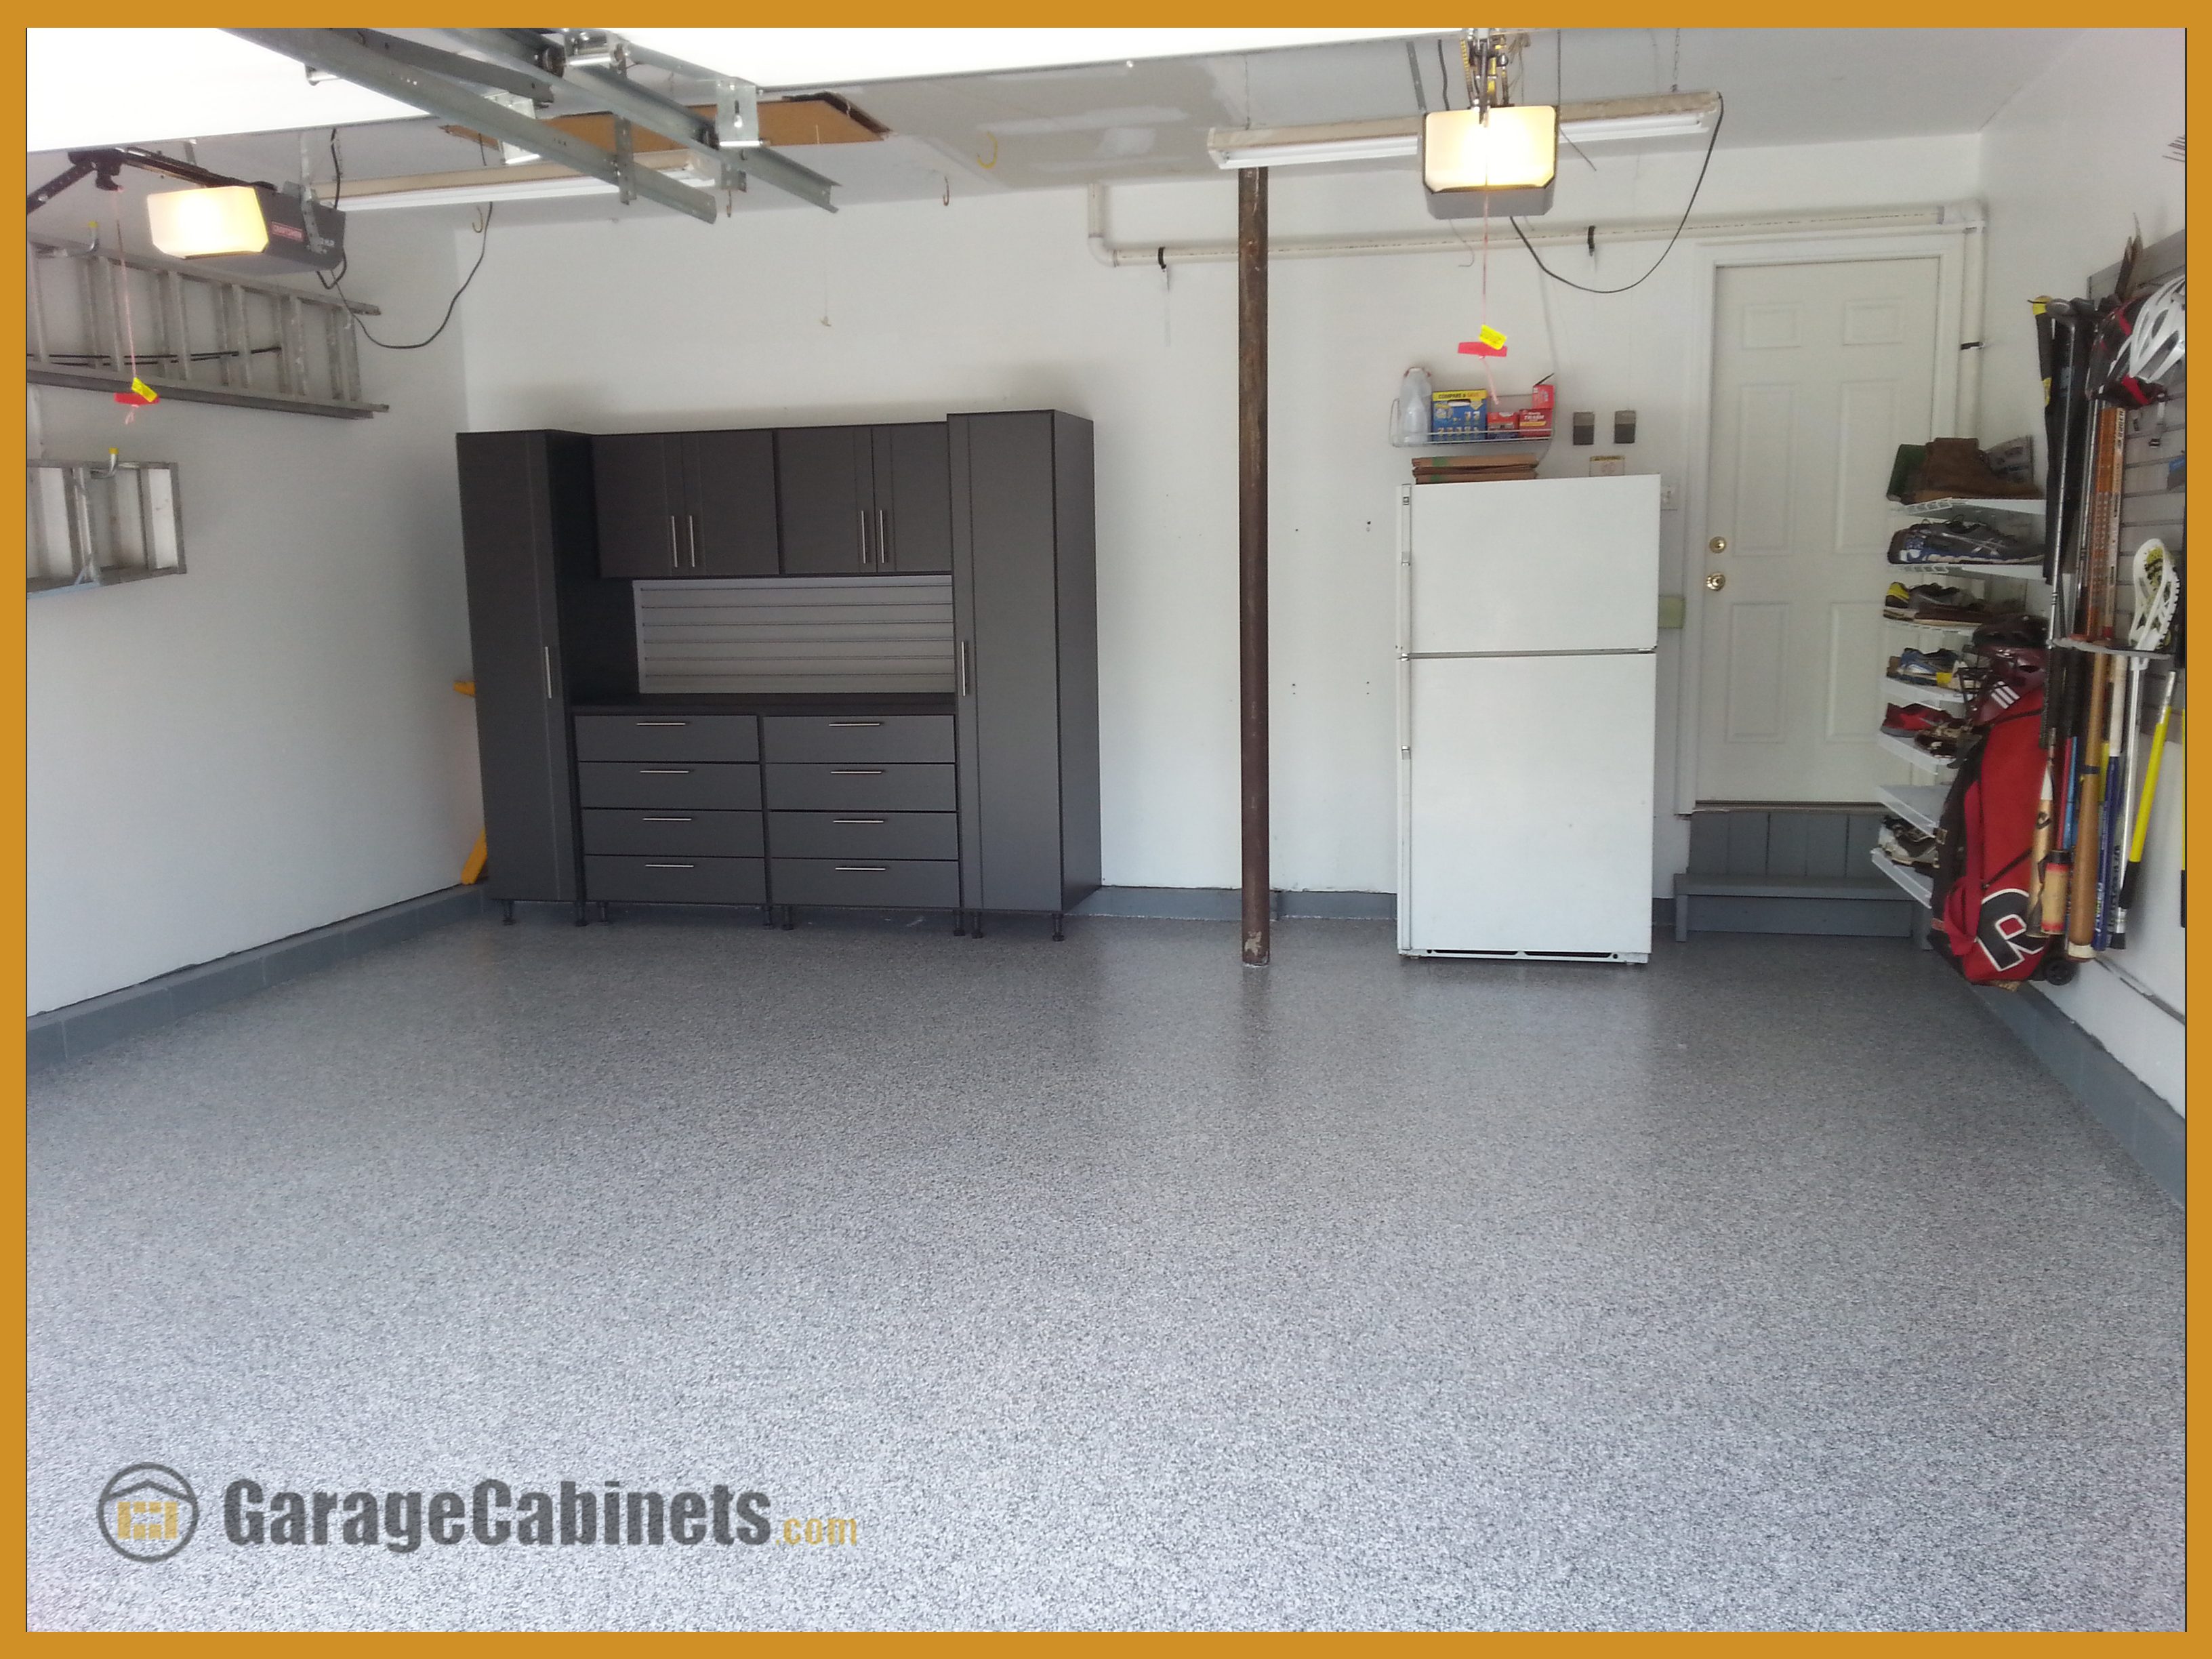 Work Space Garage Cabinets In Your Average New Jersey 2 Car Garage